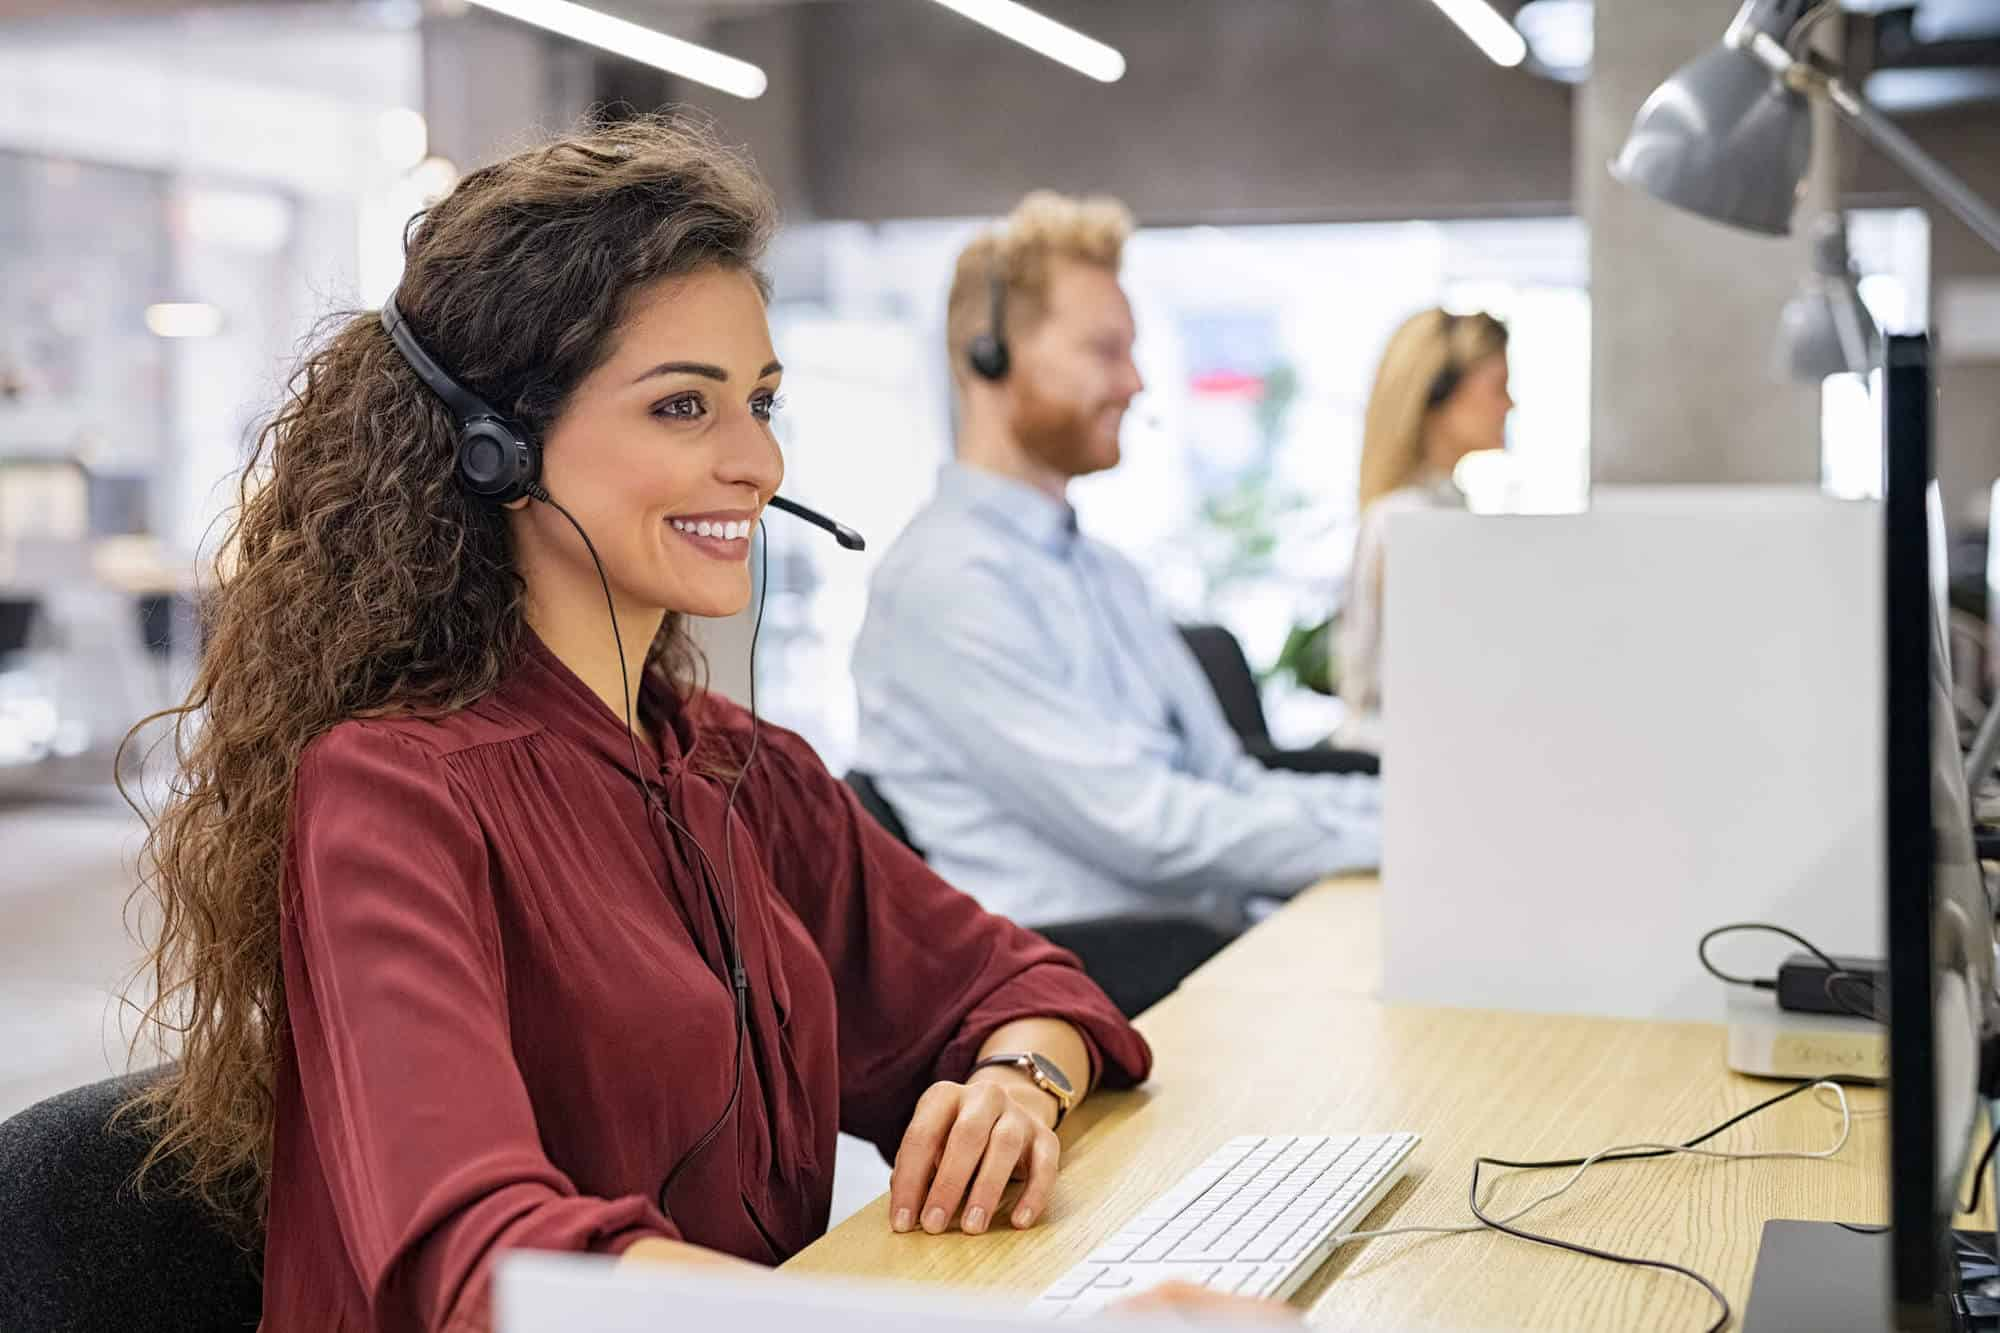 B2B Customer Service Skills, Best Practices and Training Tips